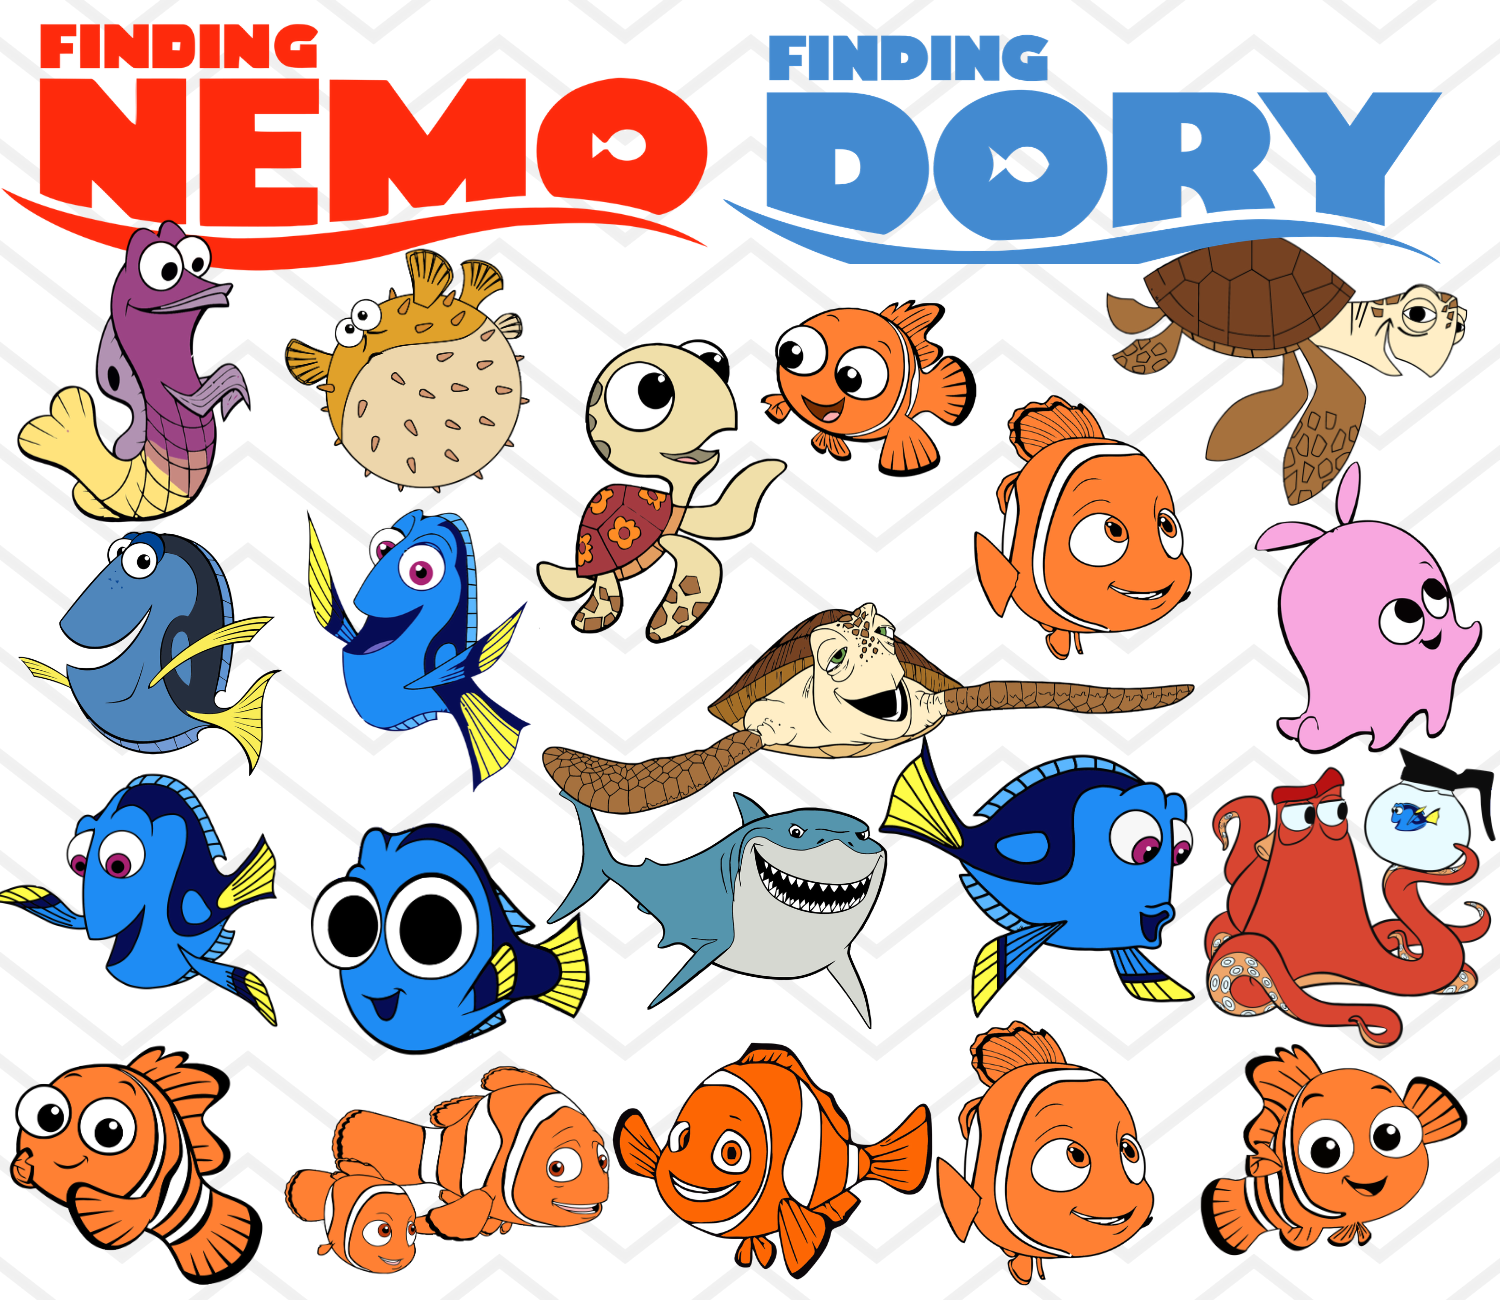 Pin On Finding Nemo Finding Dory